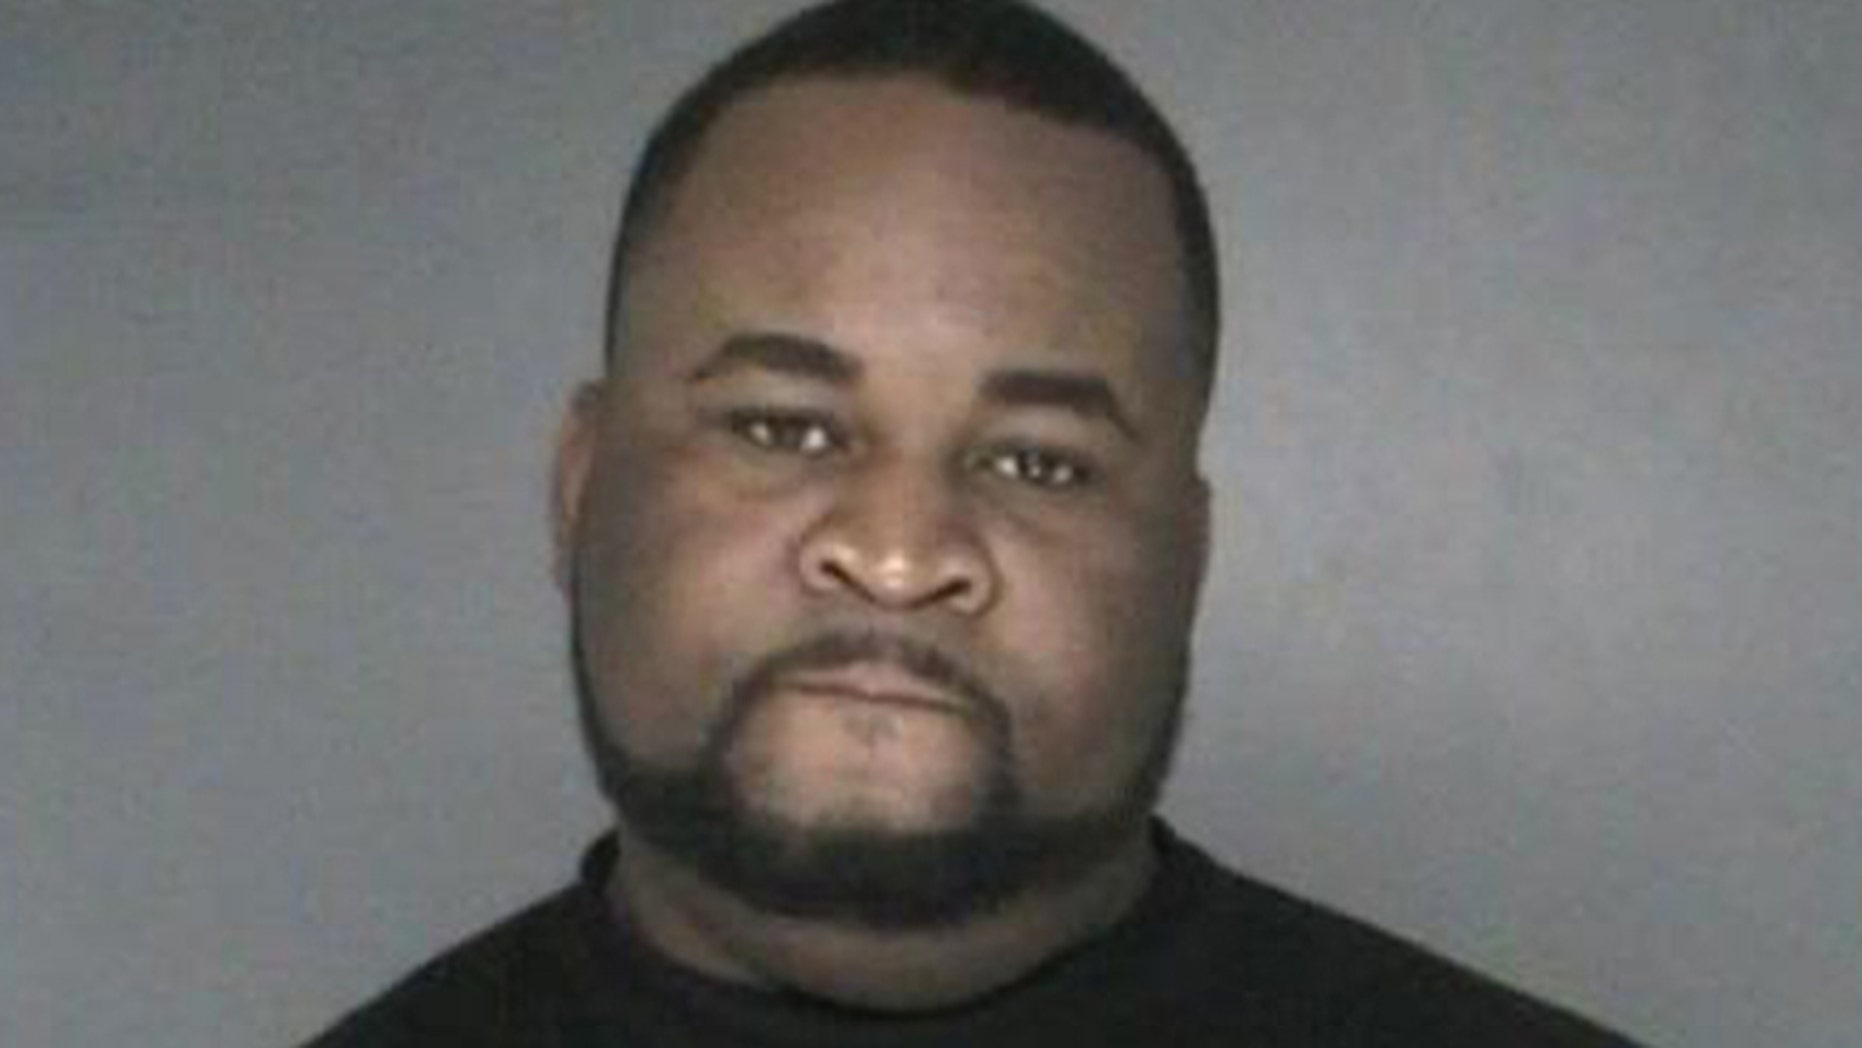 Wilguens Mentor, who owns a sneaker store on Long Island, is accused of lying about a burglary.